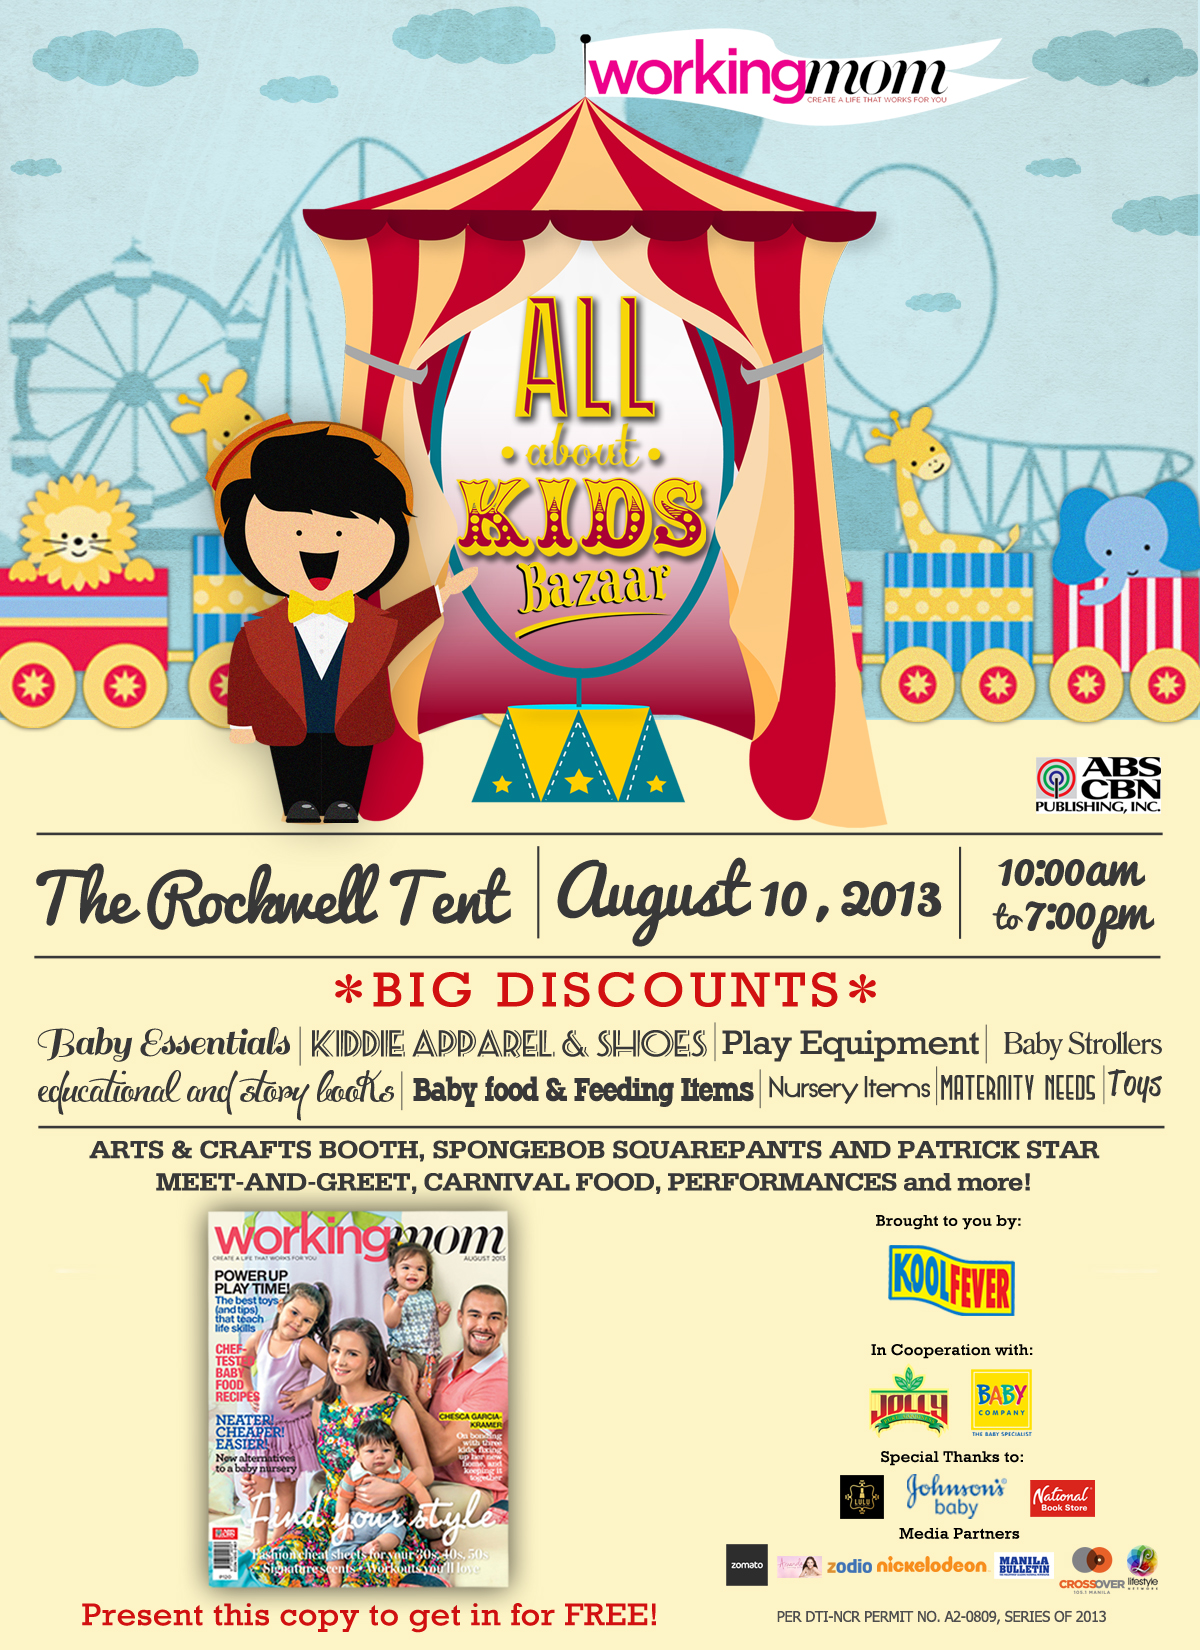 Working Mom presents the All About Kids bazaar